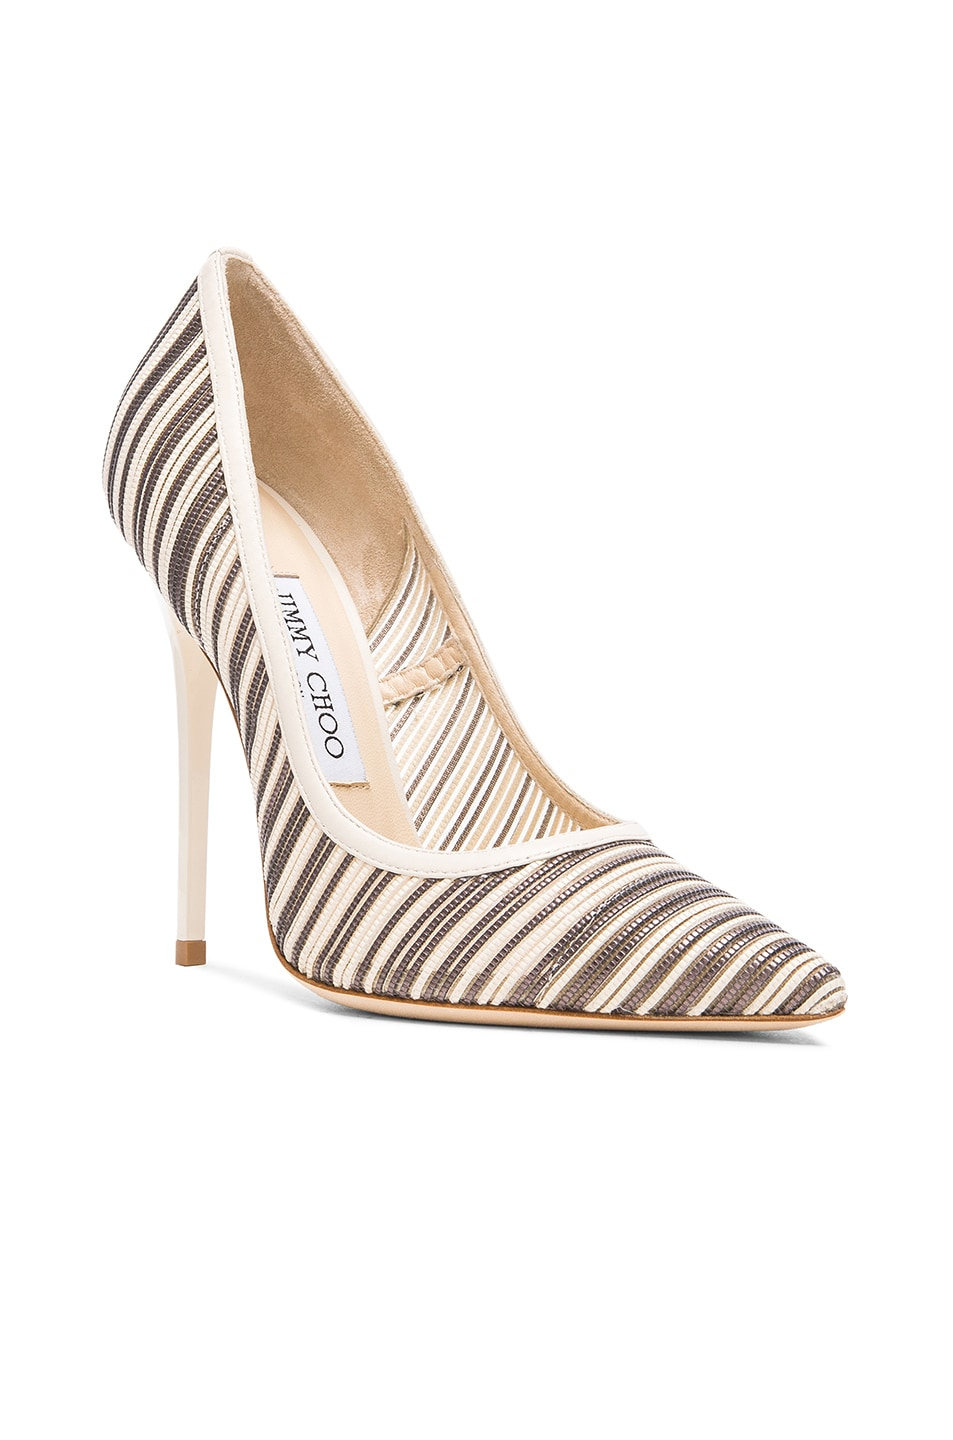 Image 2 of Jimmy Choo Metallic Anouk Mesh Pumps in Off White Mix